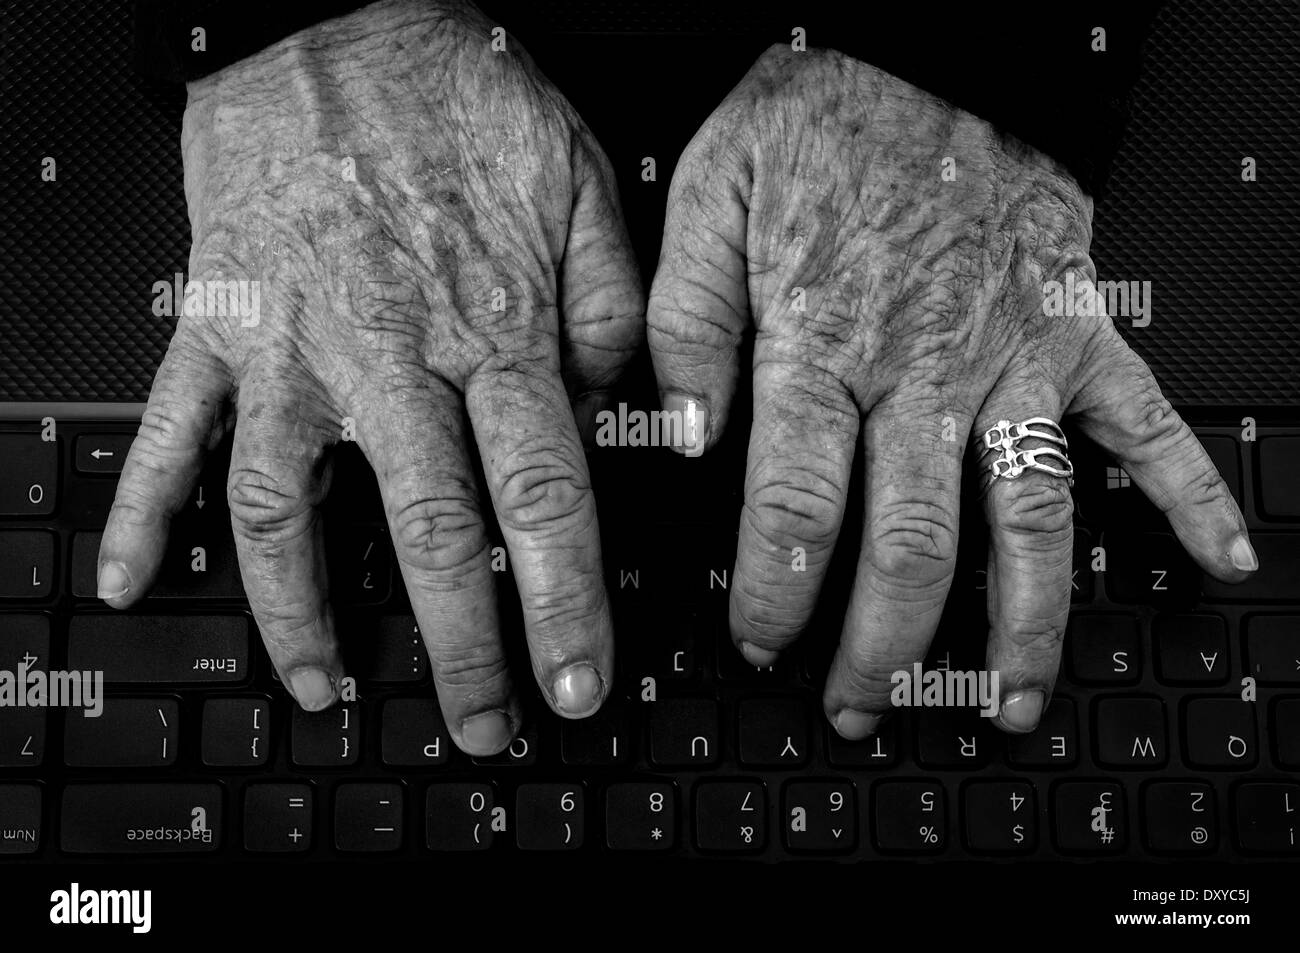 Closeup of old woman's hands with arthritis on computer keyboard in black and white - Stock Image